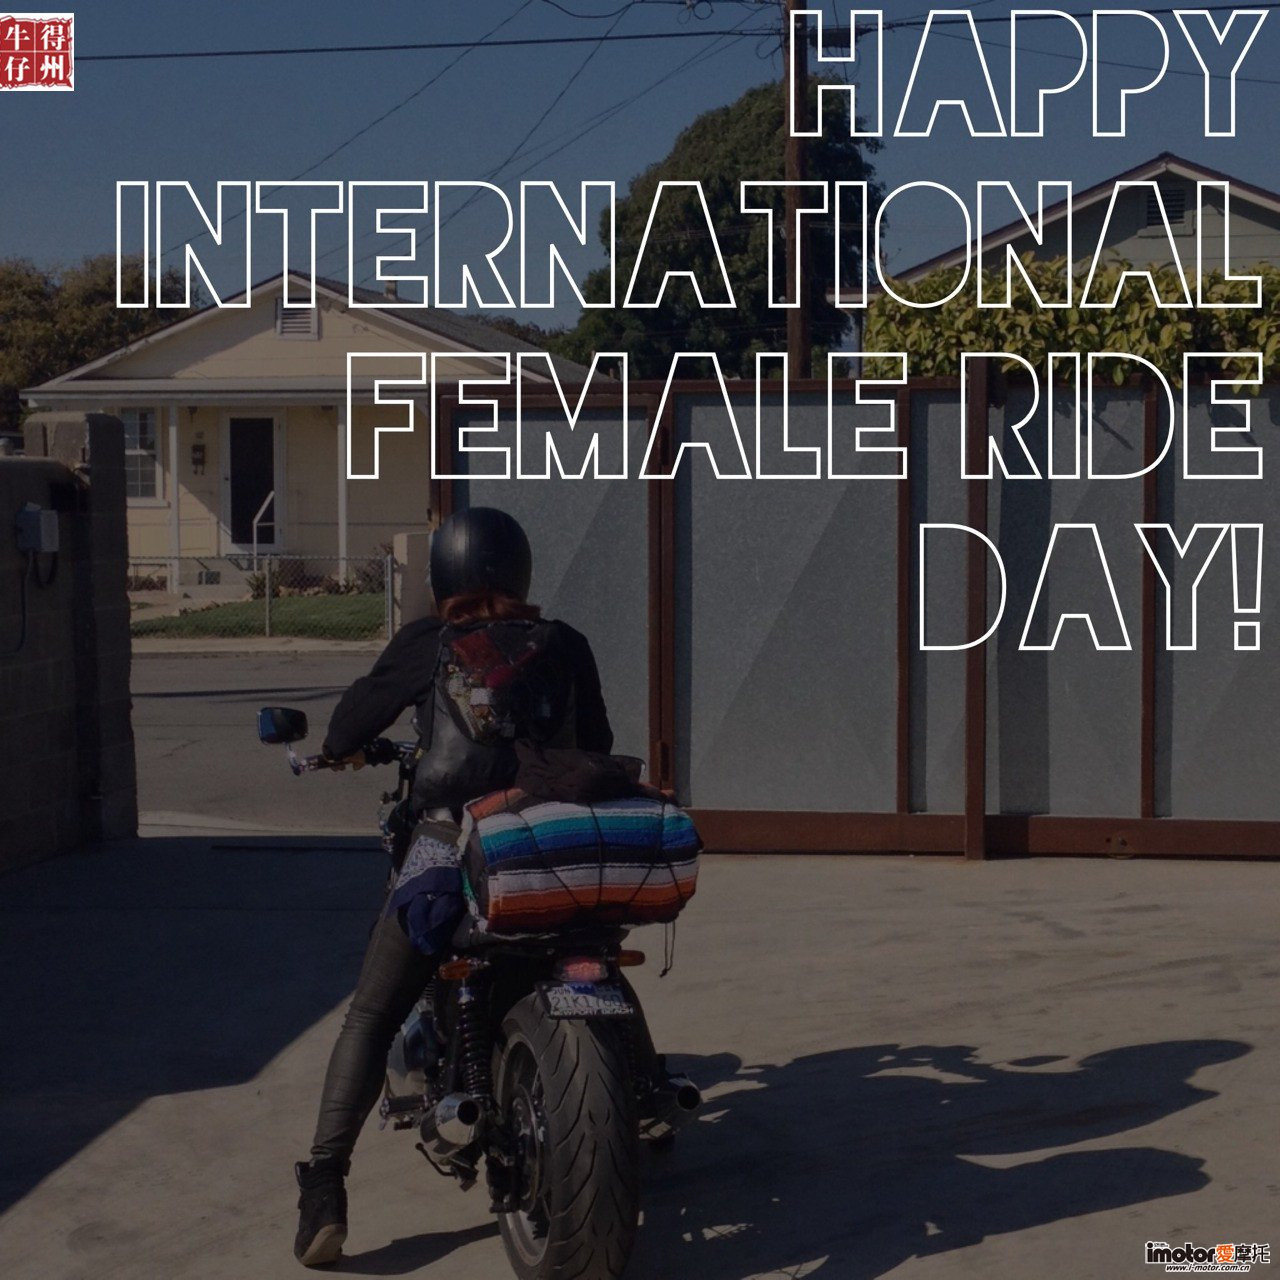 international-female-ride-day.jpg